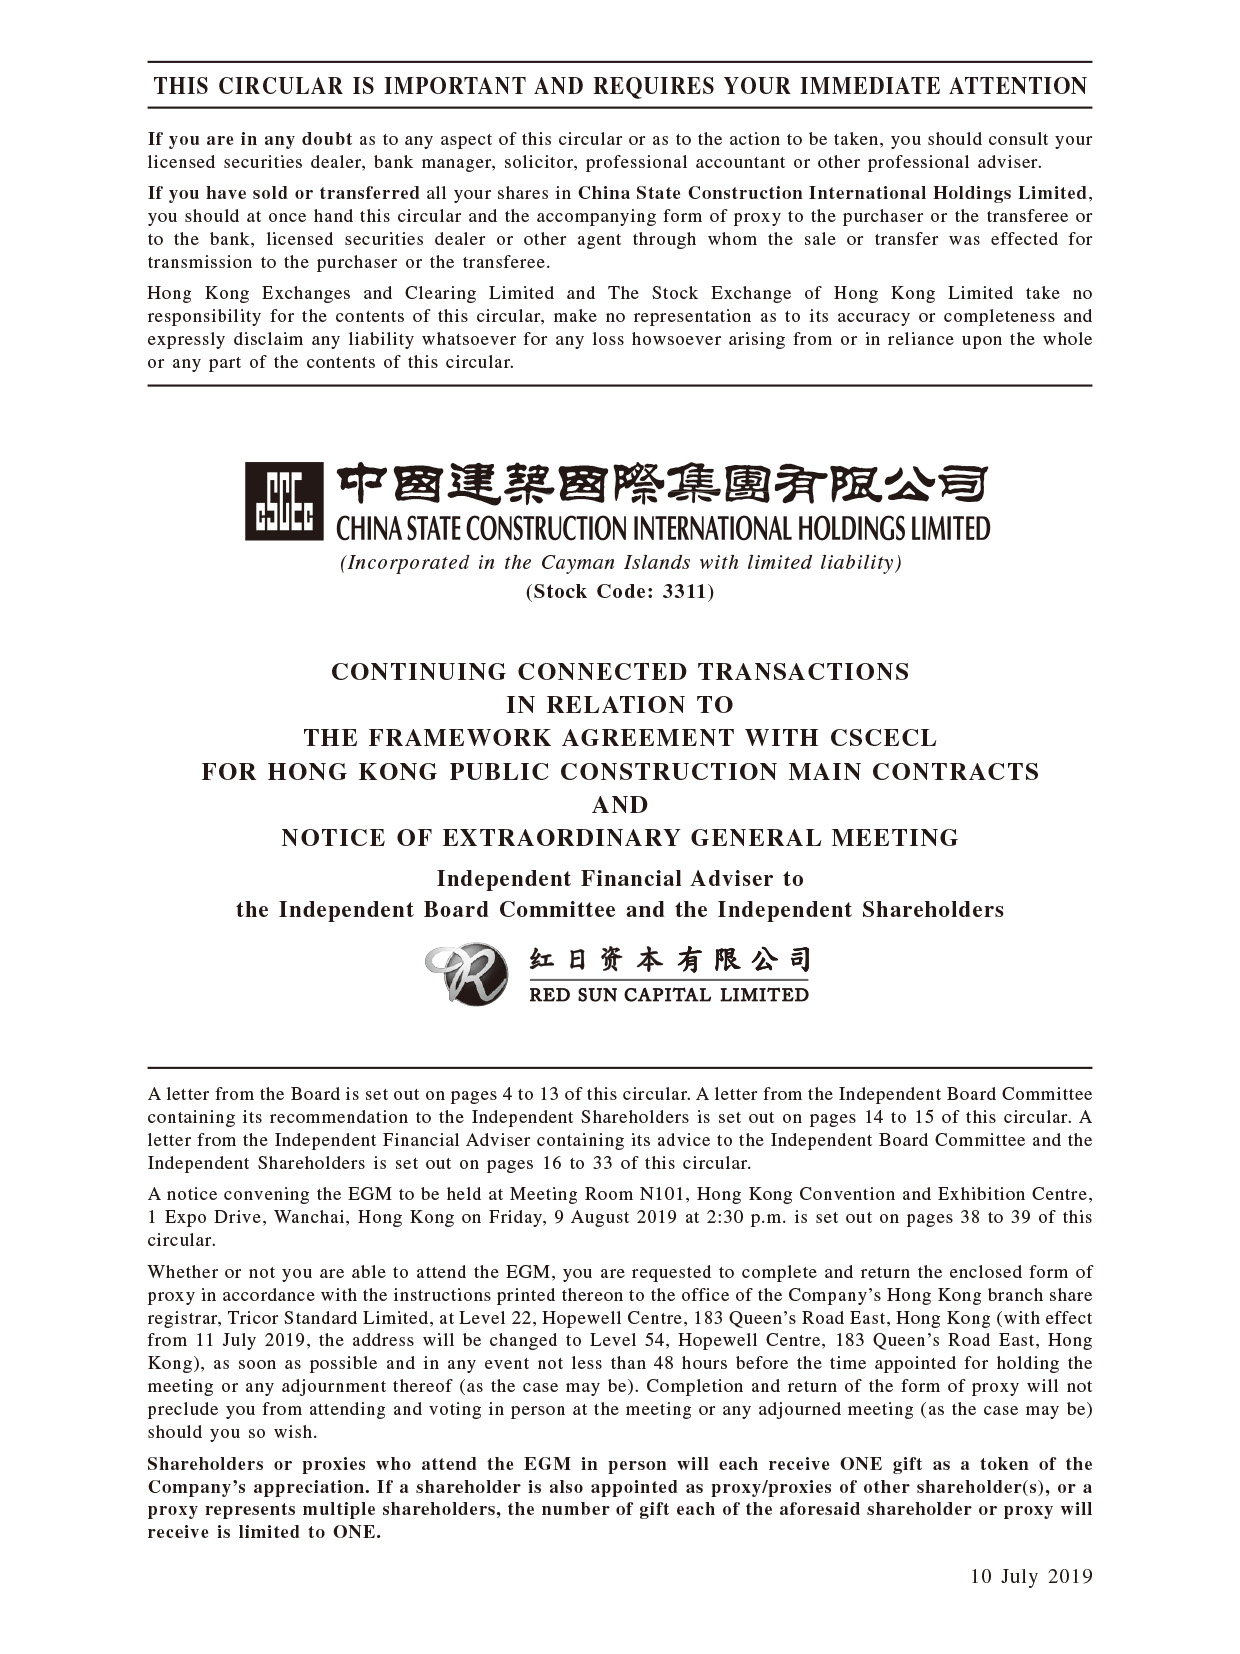 China State Construction International Holdings Limited